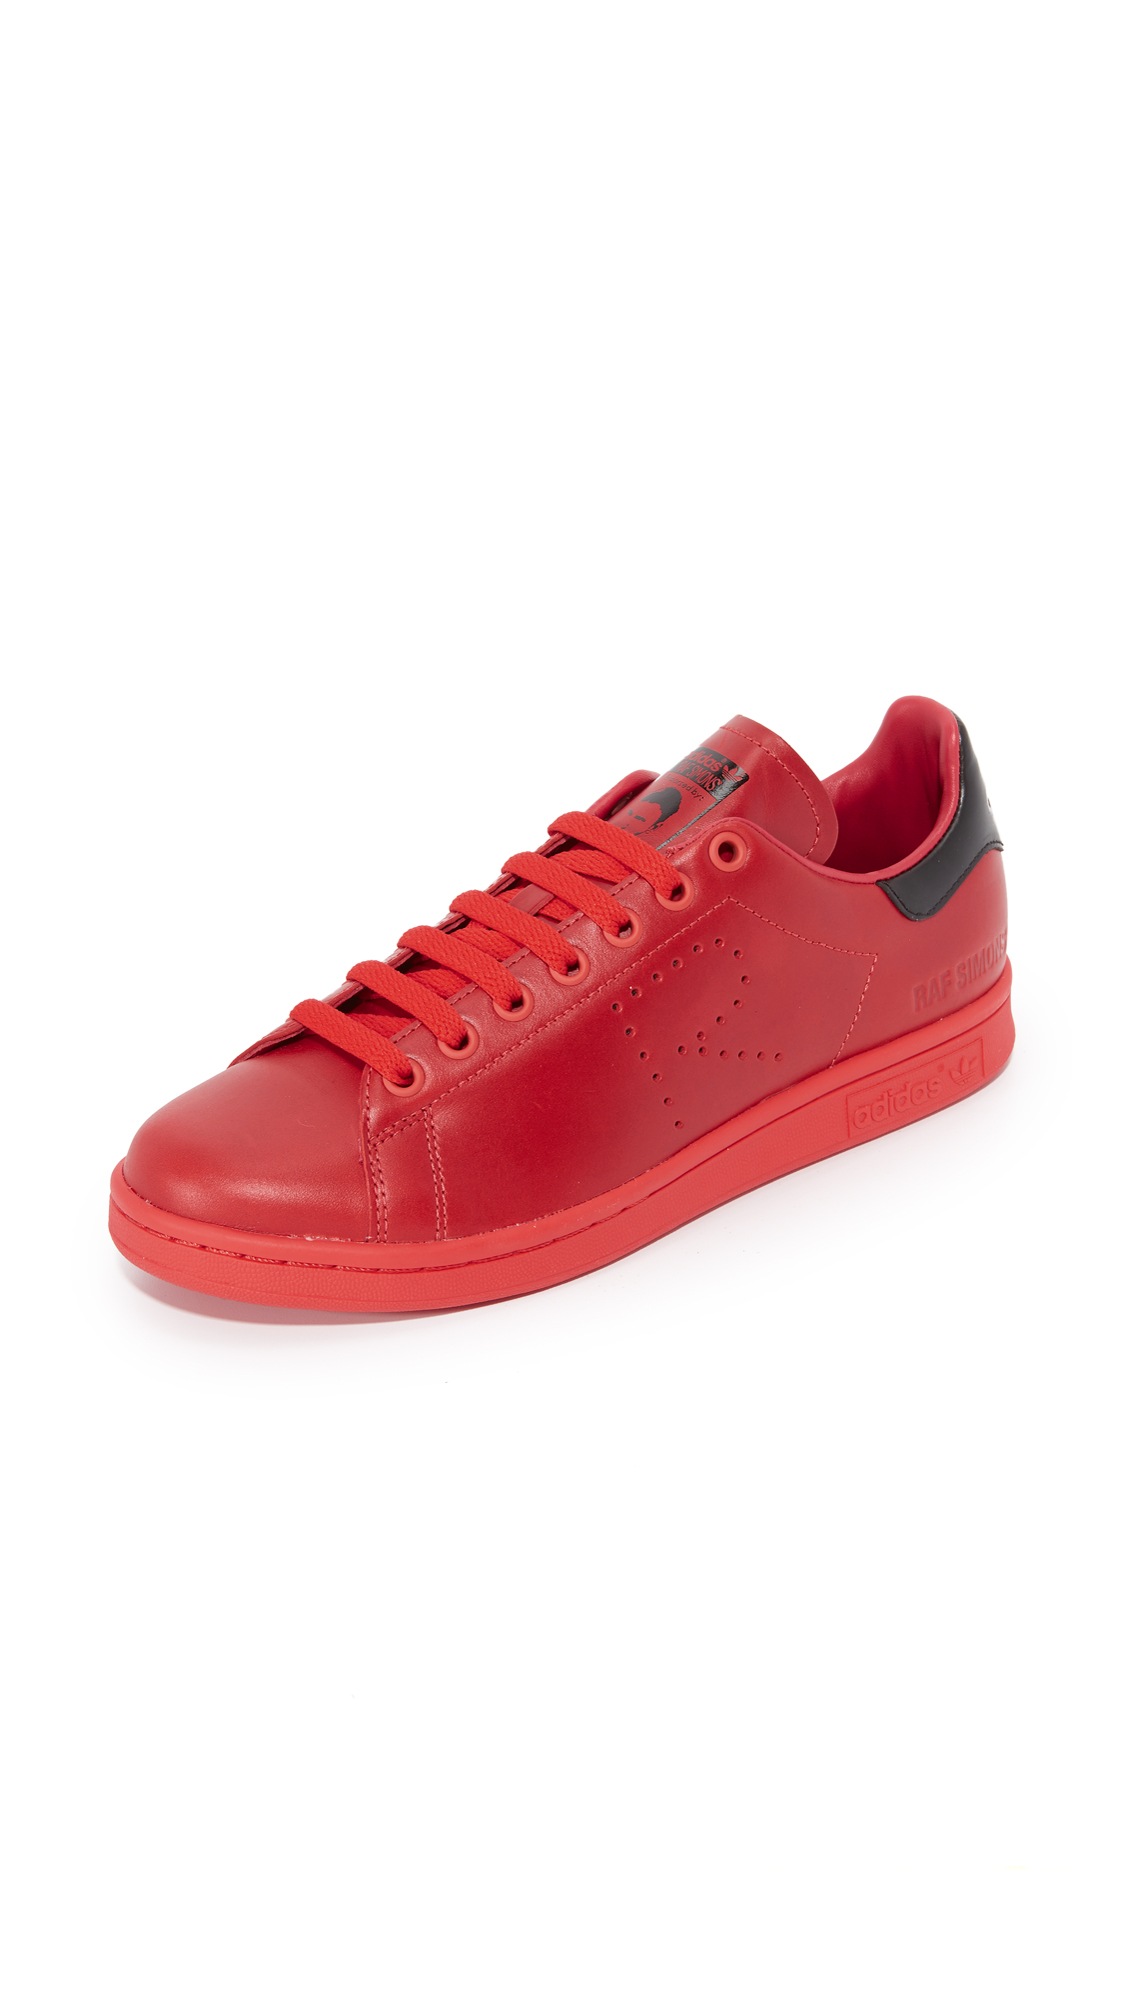 Adidas Raf Simons Stan Smith Sneakers - Tomato/Black/Tomato at Shopbop